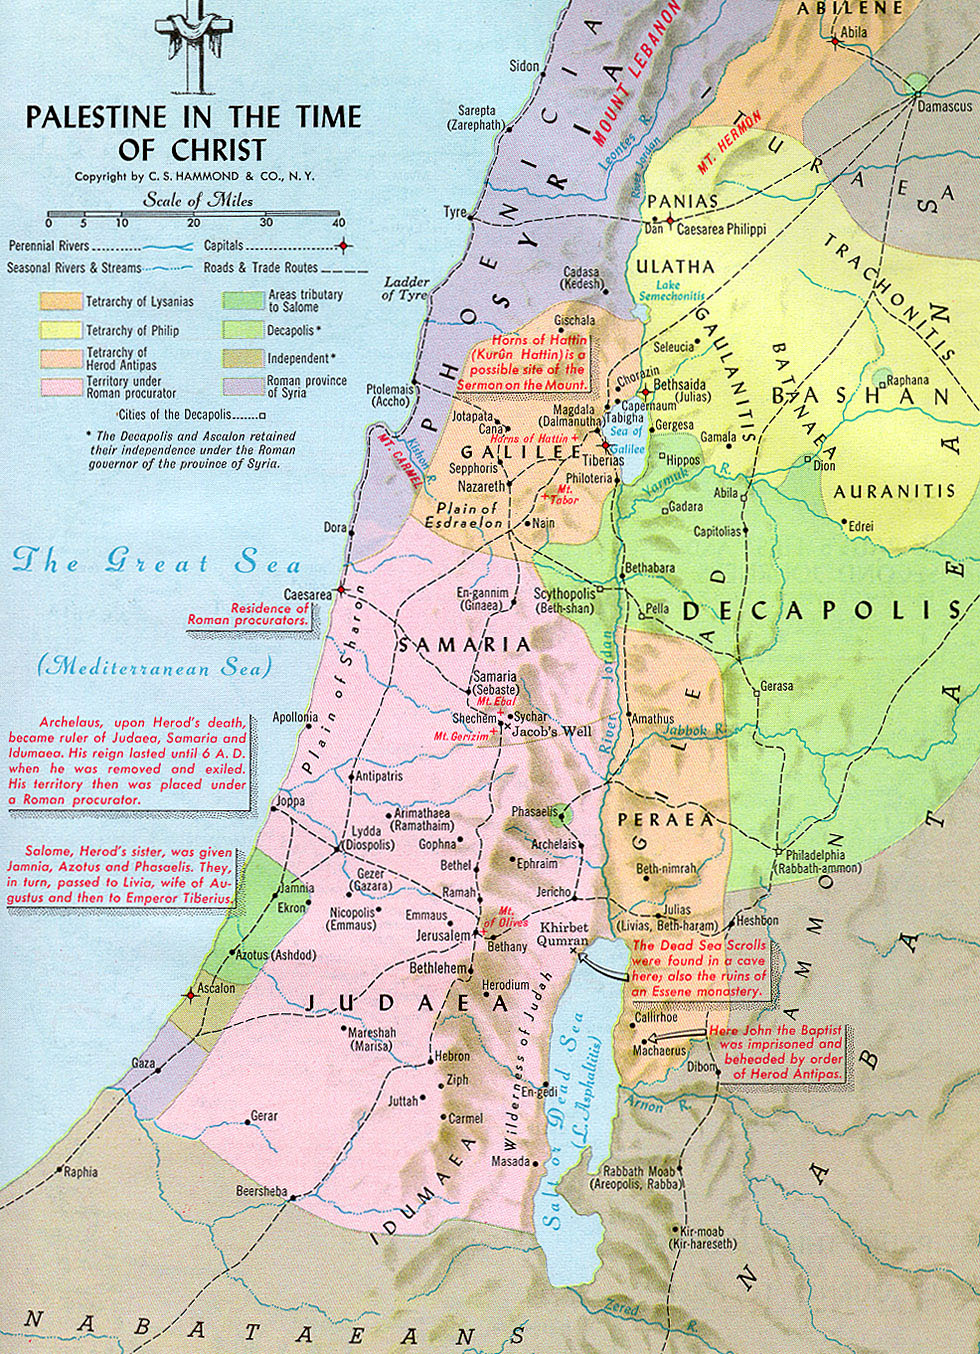 Historical Maps of Israel and Palestine on map during jesus' time, map of euphrates in biblical time, map of egypt and israel in biblical time, map of israel at jesus time, map of the land jesus, map of the world in jesus time, sea of galilee in jesus time, bethlehem during jesus' time, map of egypt in jesus time, map of roman empire in jesus time, map of time zones in us, map of syria in jesus time, map of caesarea philippi in jesus time, map holy land israel, map of nazareth in jesus time, map of mediterranean in jesus time, bible fullness of time, map of jordan in jesus time, map of judea in jesus time, palestine in christ's time,